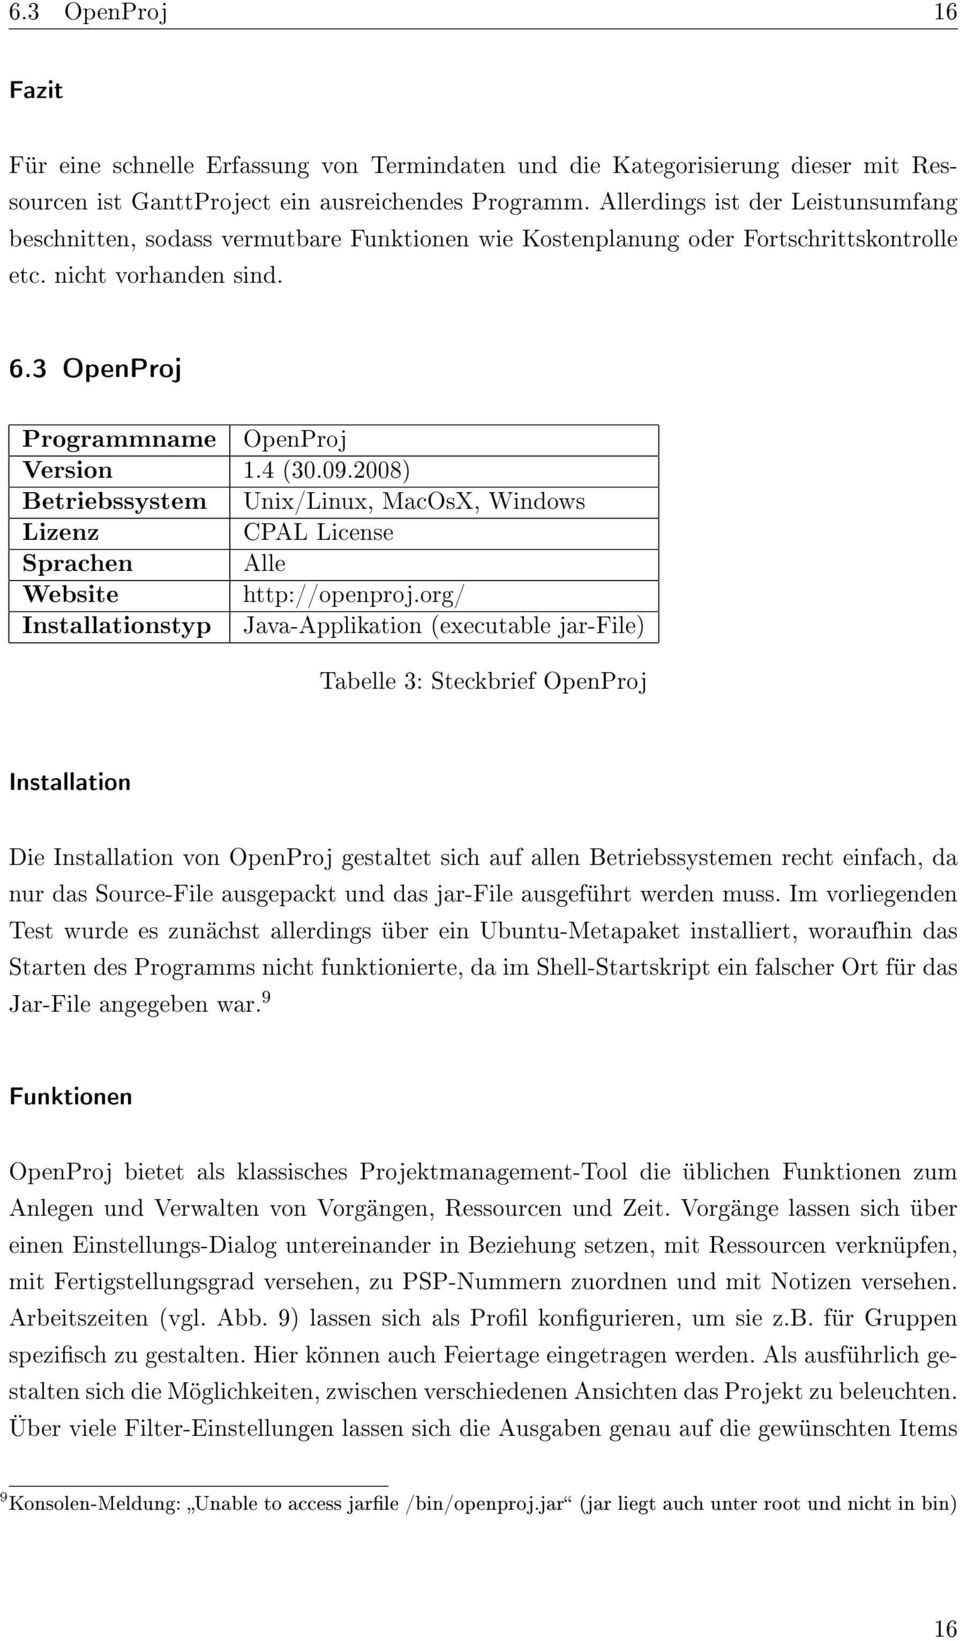 09.2008) Betriebssystem Unix/Linux, MacOsX, Windows Lizenz CPAL License Sprachen Alle Website http://openproj.